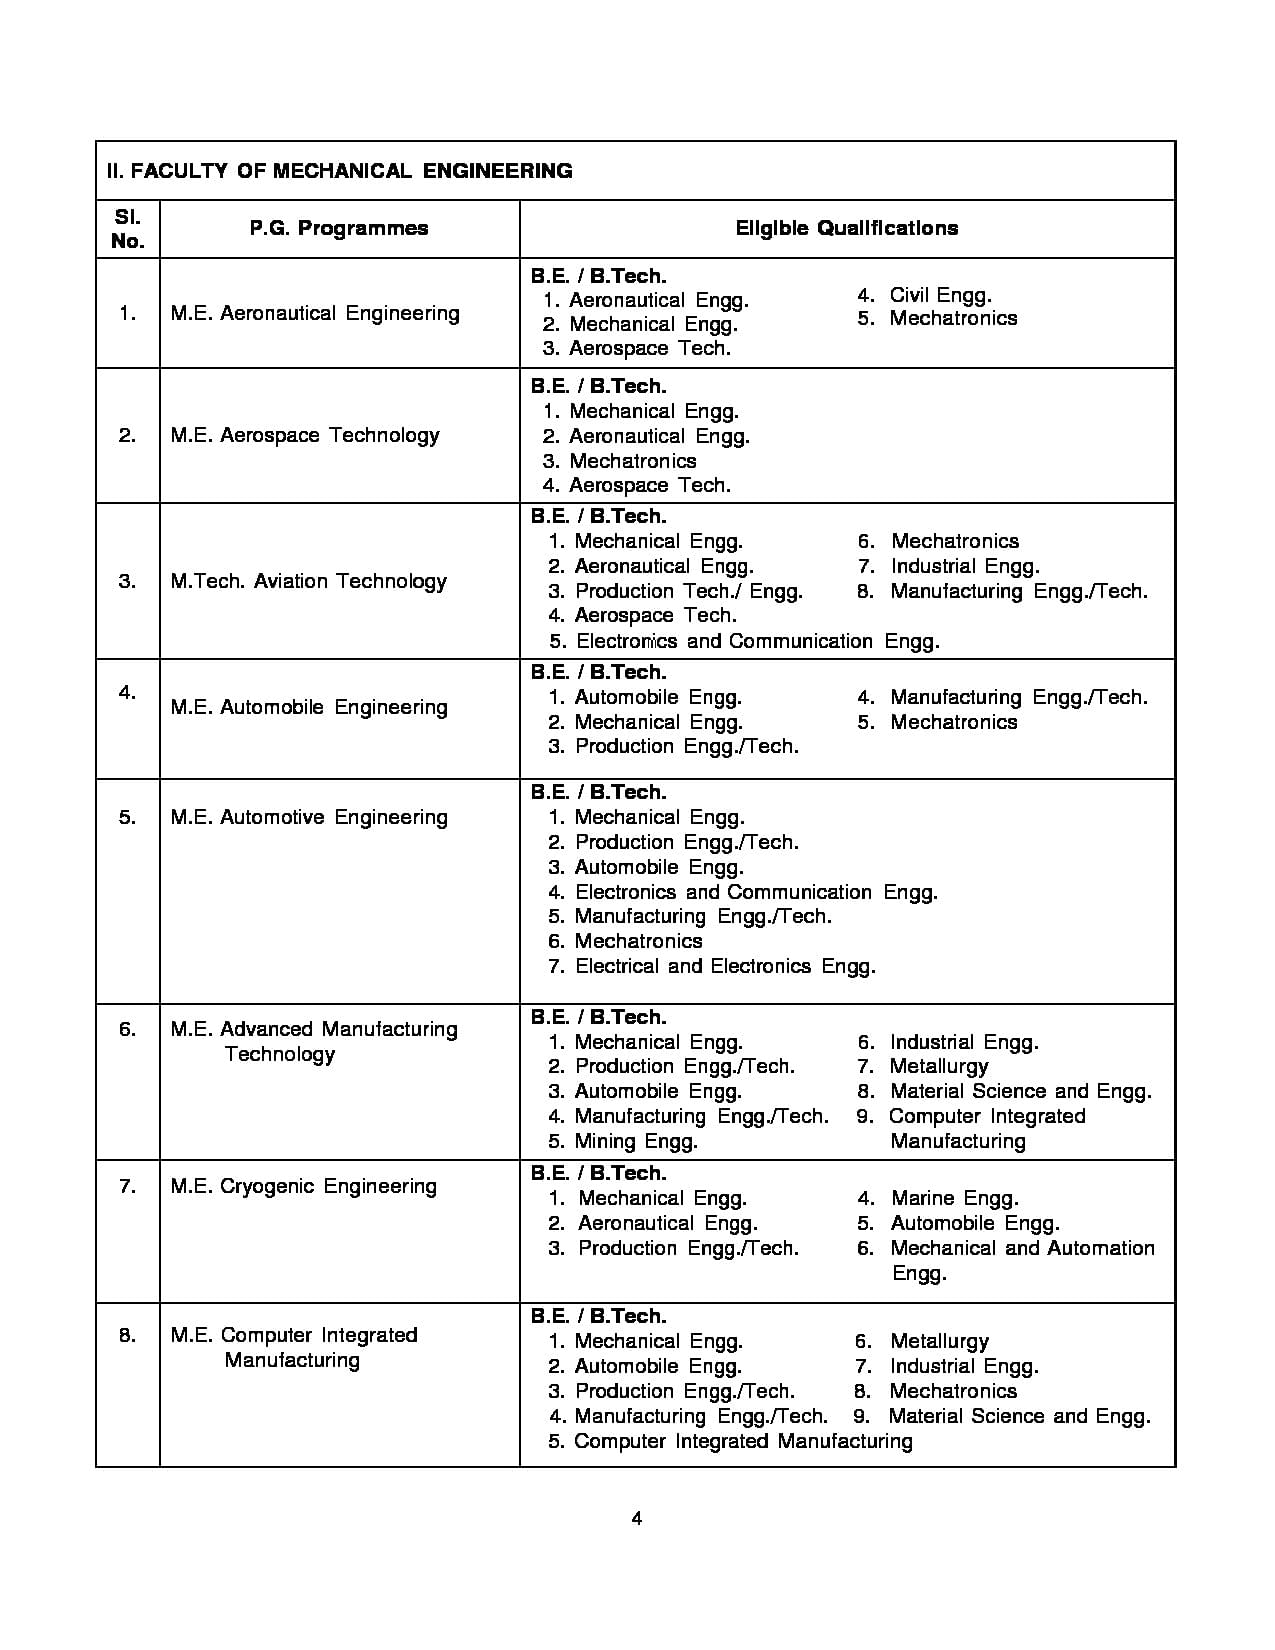 Anna University, Chennai - Results, Exams, Cut Off 2019, Admissions